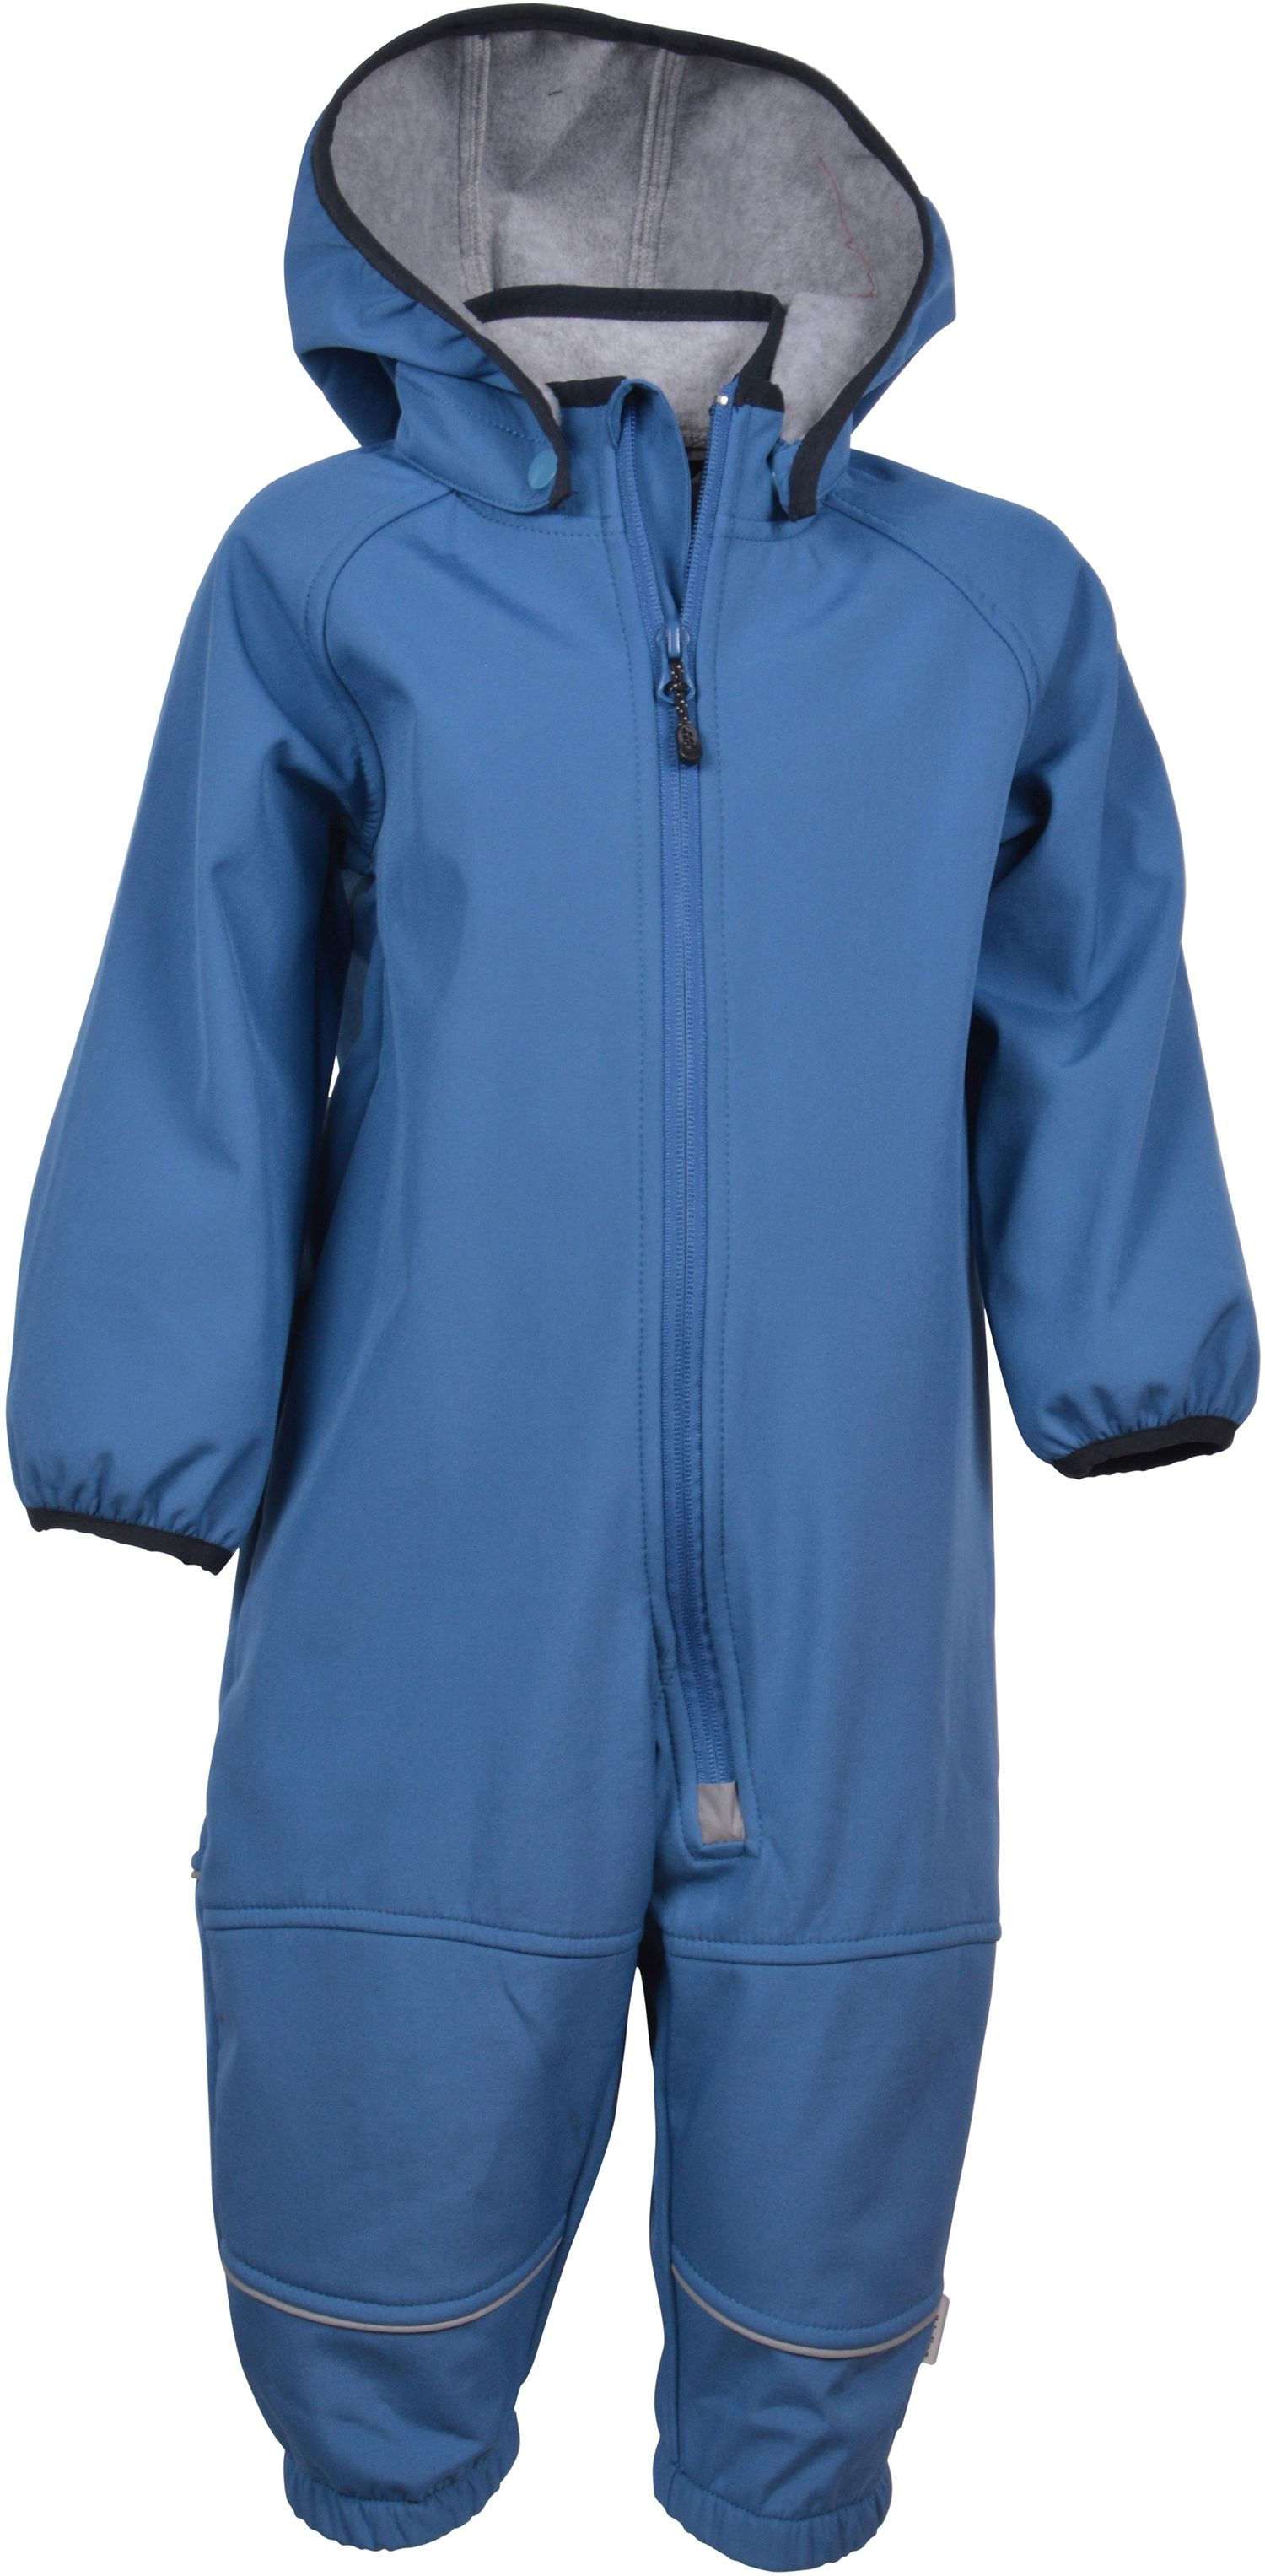 Image of Softshell dragt fra Mikk-Line - Dark Blue (16002-270)